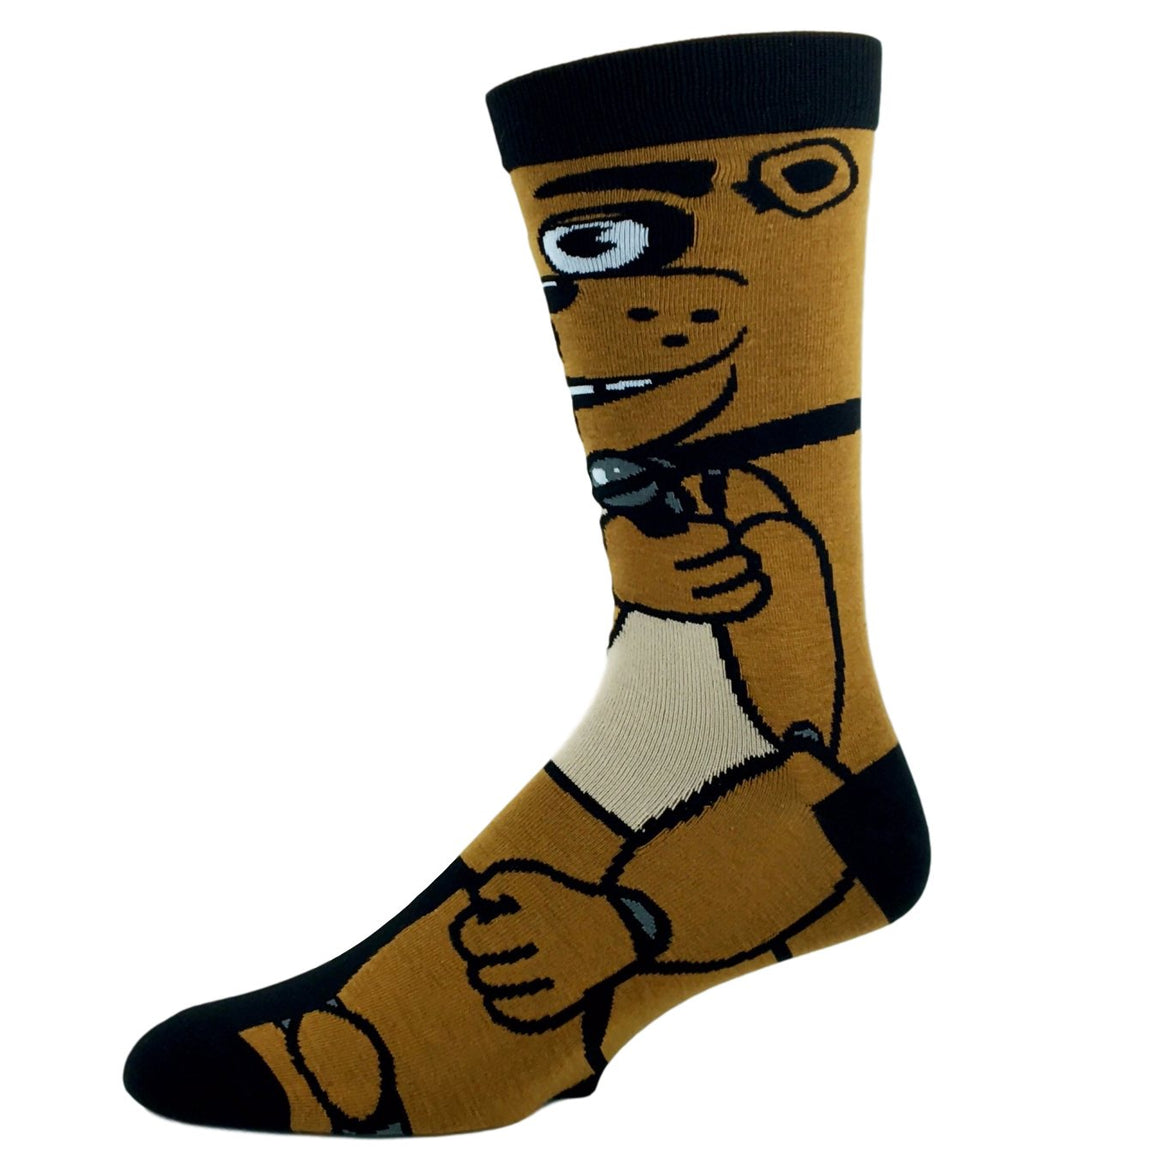 Five Nights at Freddy's 360 Socks - The Sock Spot